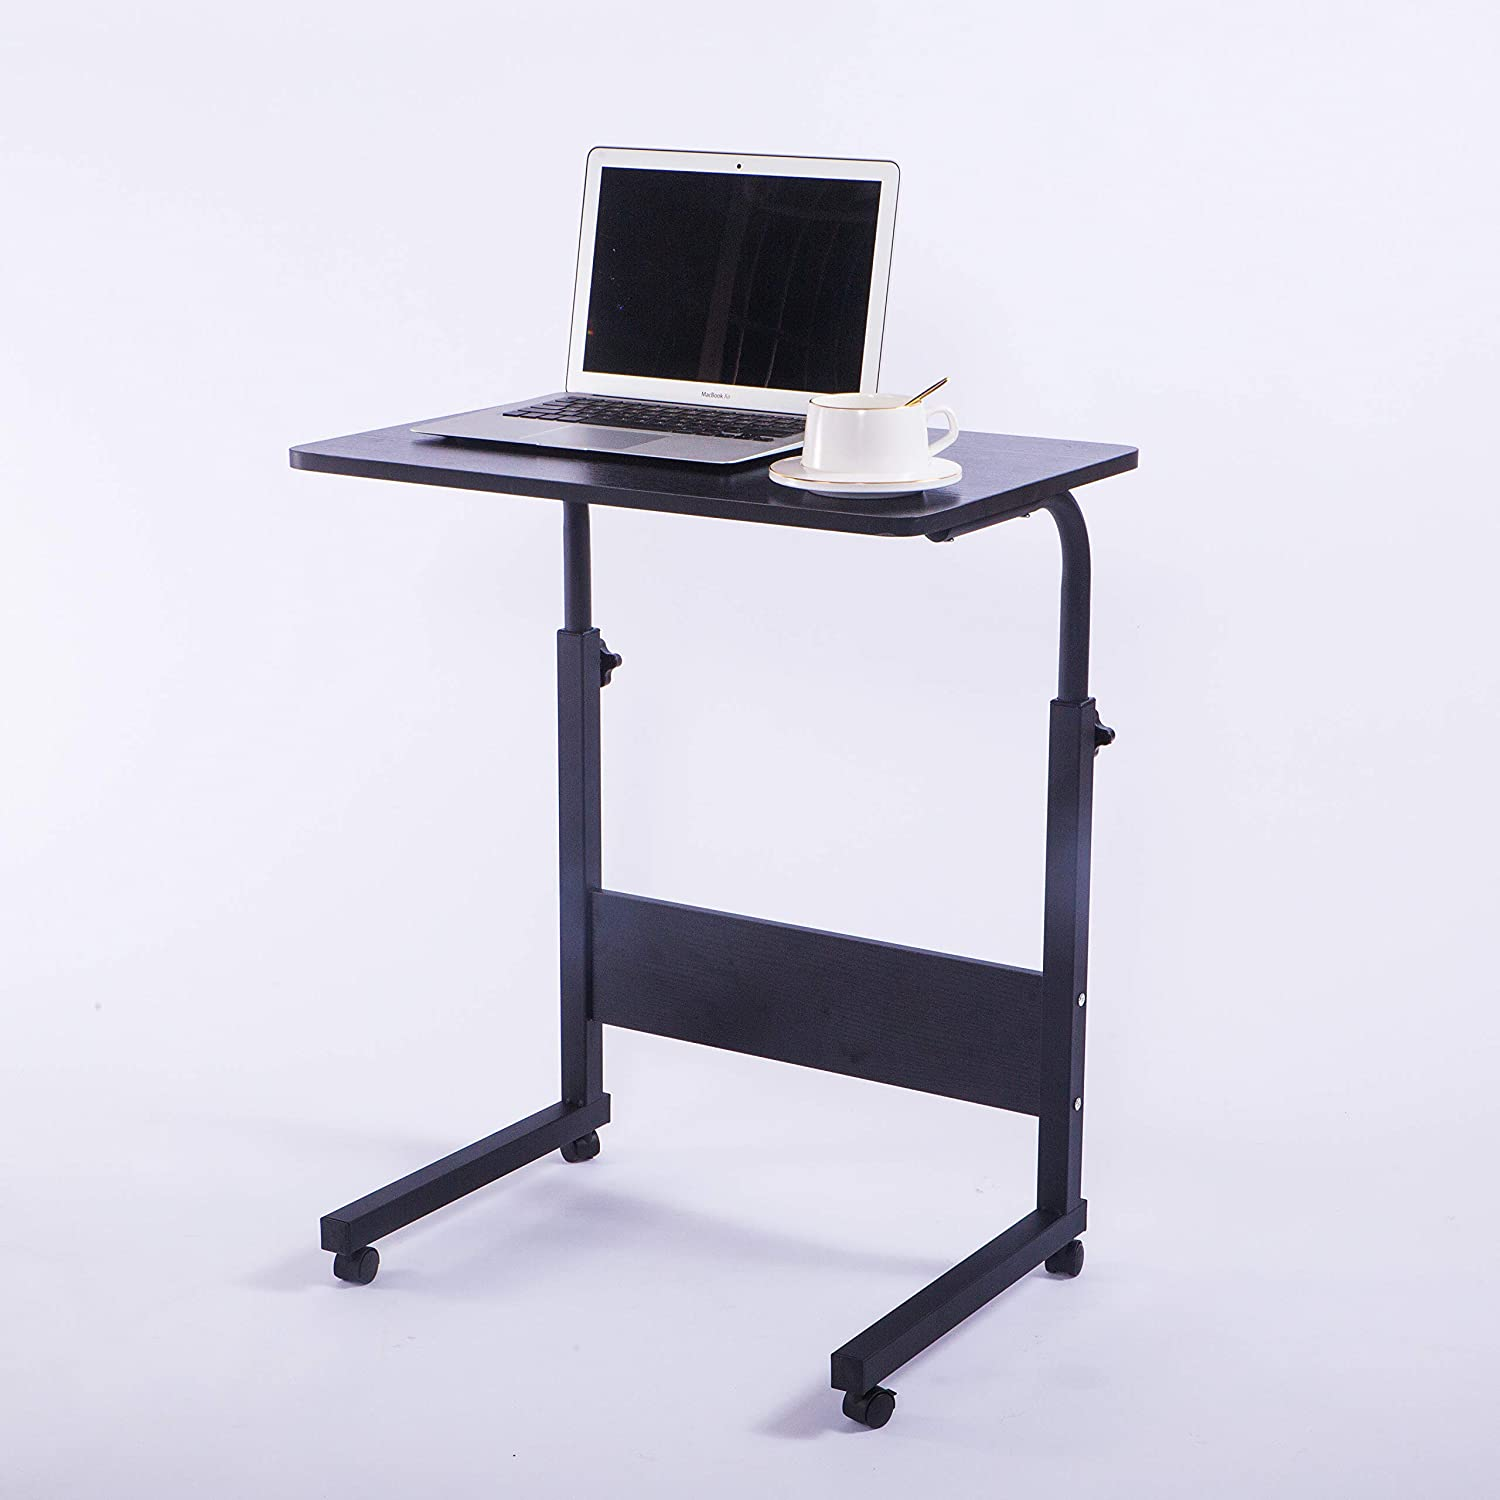 Laptop Cart 23 6 Mobile Table Fancasa Movable Portable Adjustable Notebook Computer Stand With Wheels Black Office Products